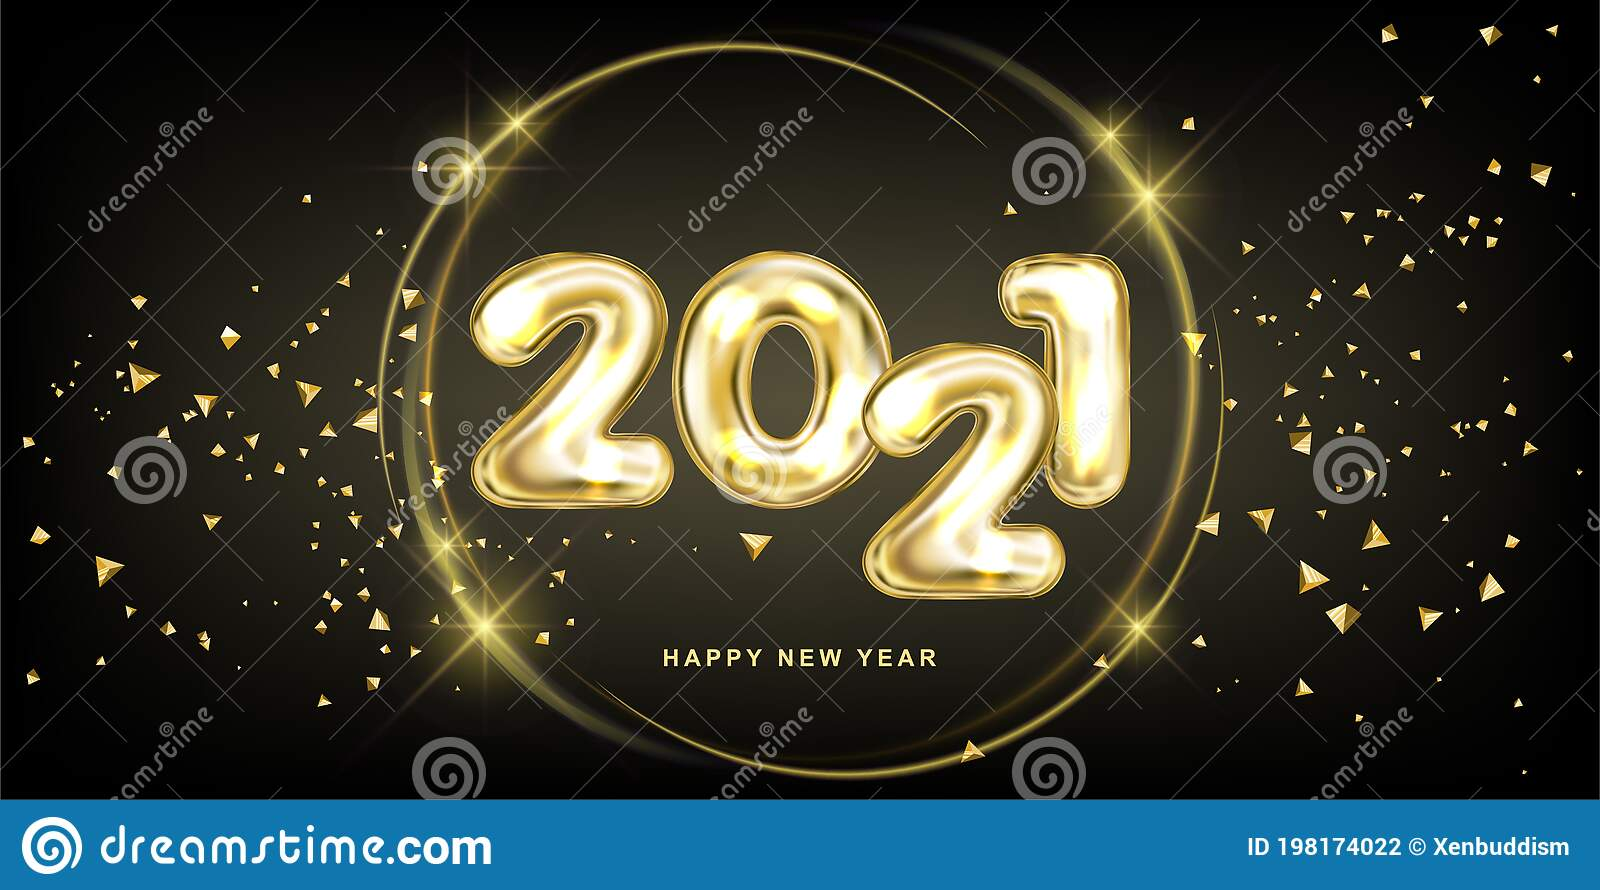 Christmas Gala 2021 Happy New 2021 Year Christmas Illustration Of Golden Metallic Lettering And Pyramids Stock Vector Illustration Of Christmas Celebrate 198174022